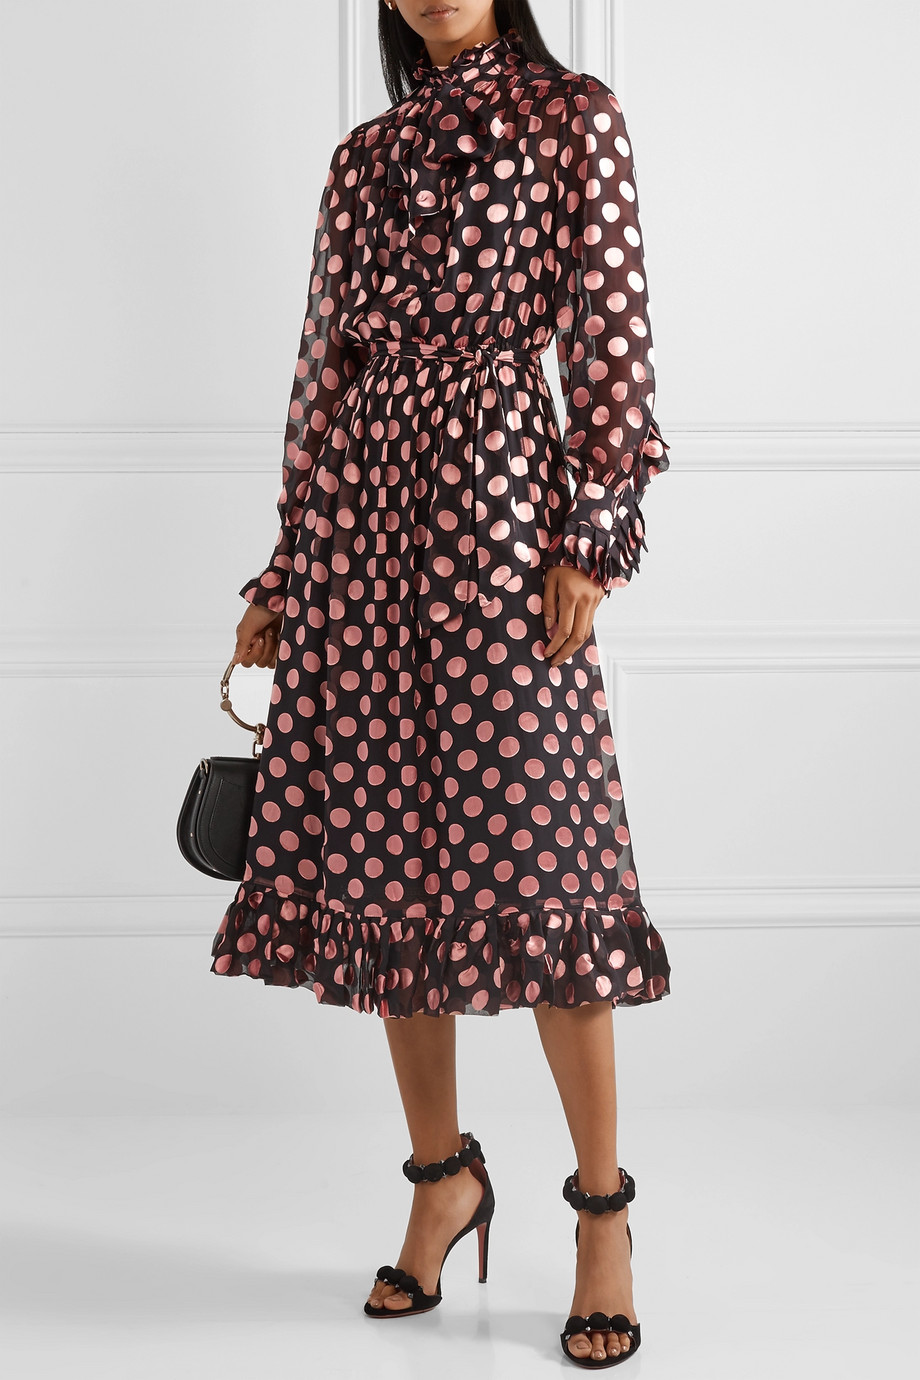 Polka Dot Zimmermann Dress.jpg